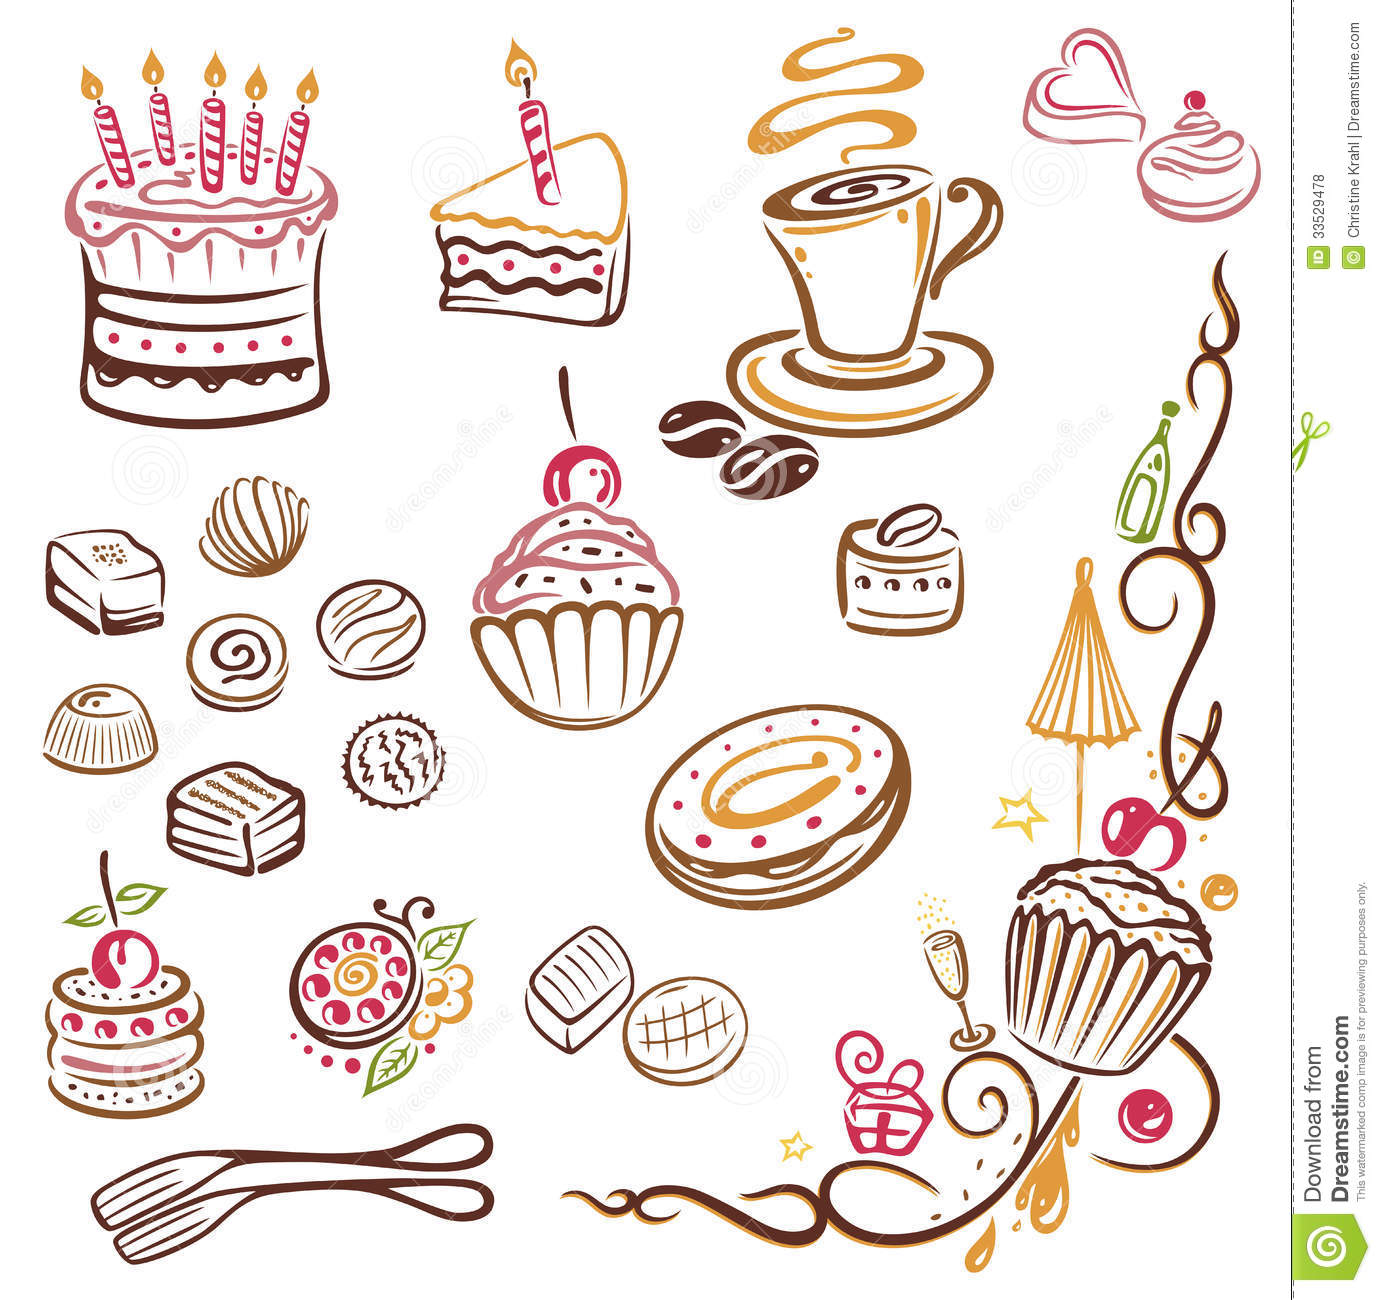 Clipart Cake Vector Free Download : Cakes, coffee, pralines stock vector. Image of celebration ...